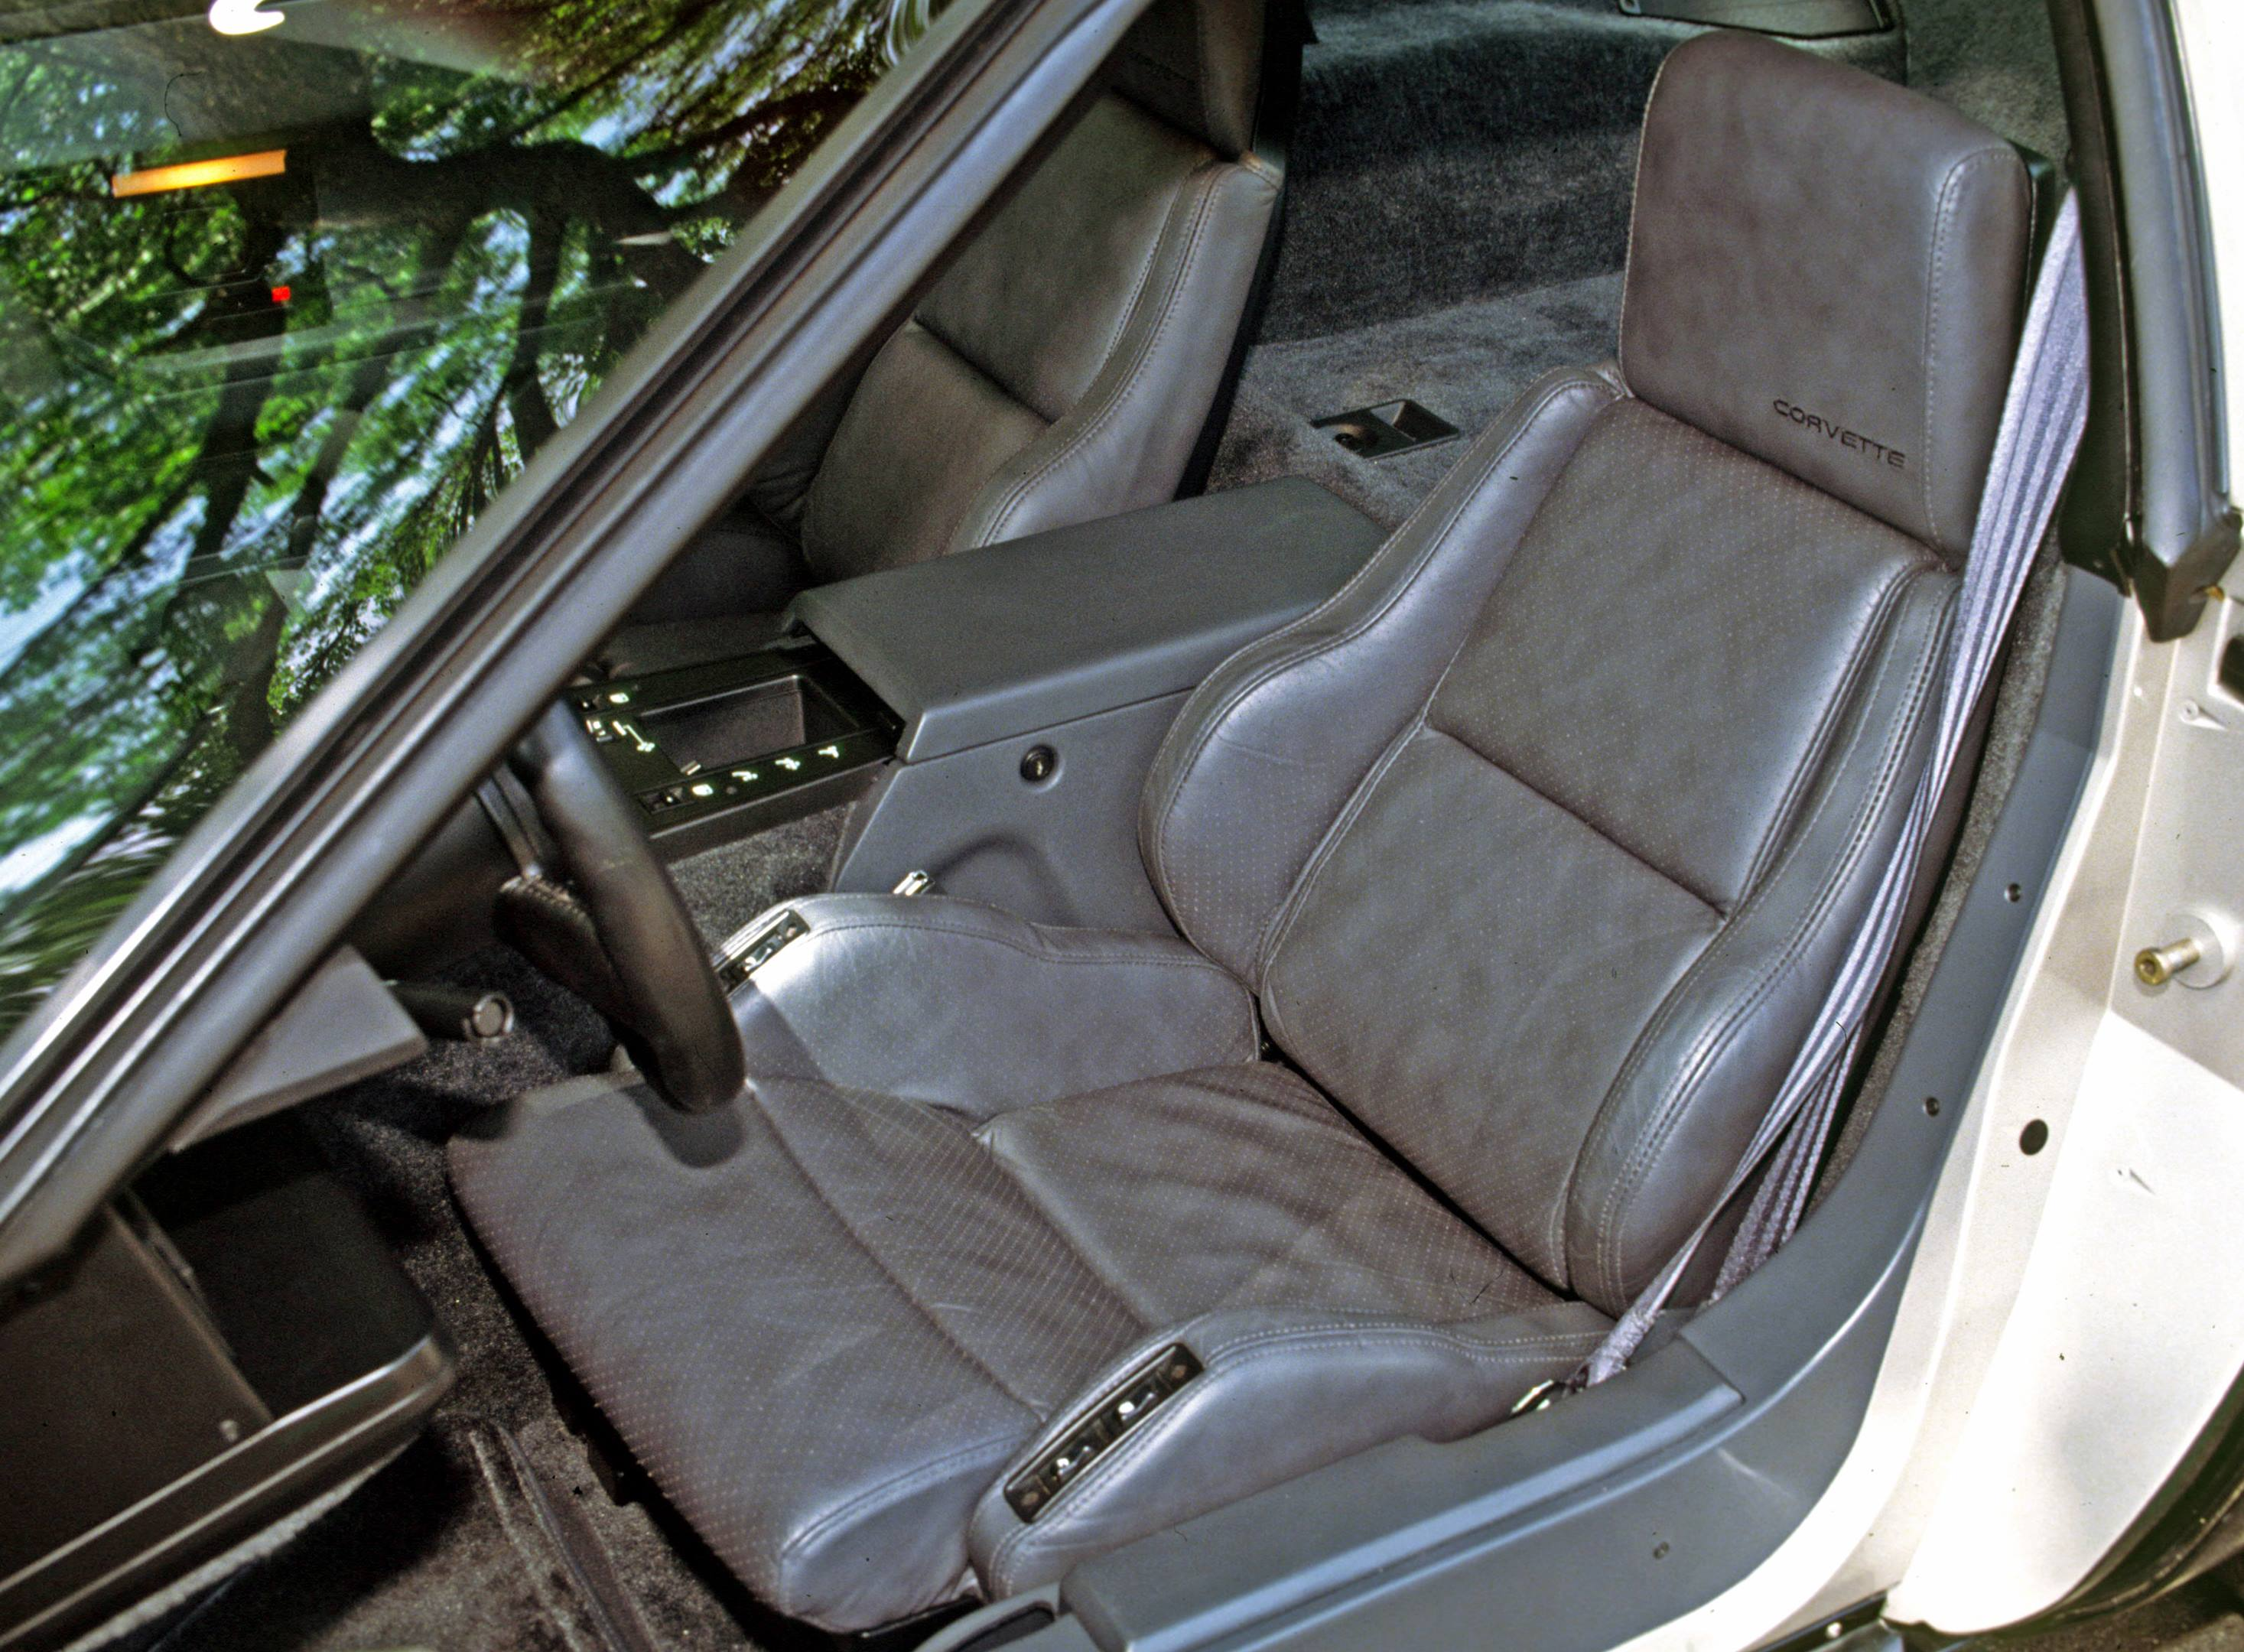 The 1986 Malcolm Konner Edition Corvette interior